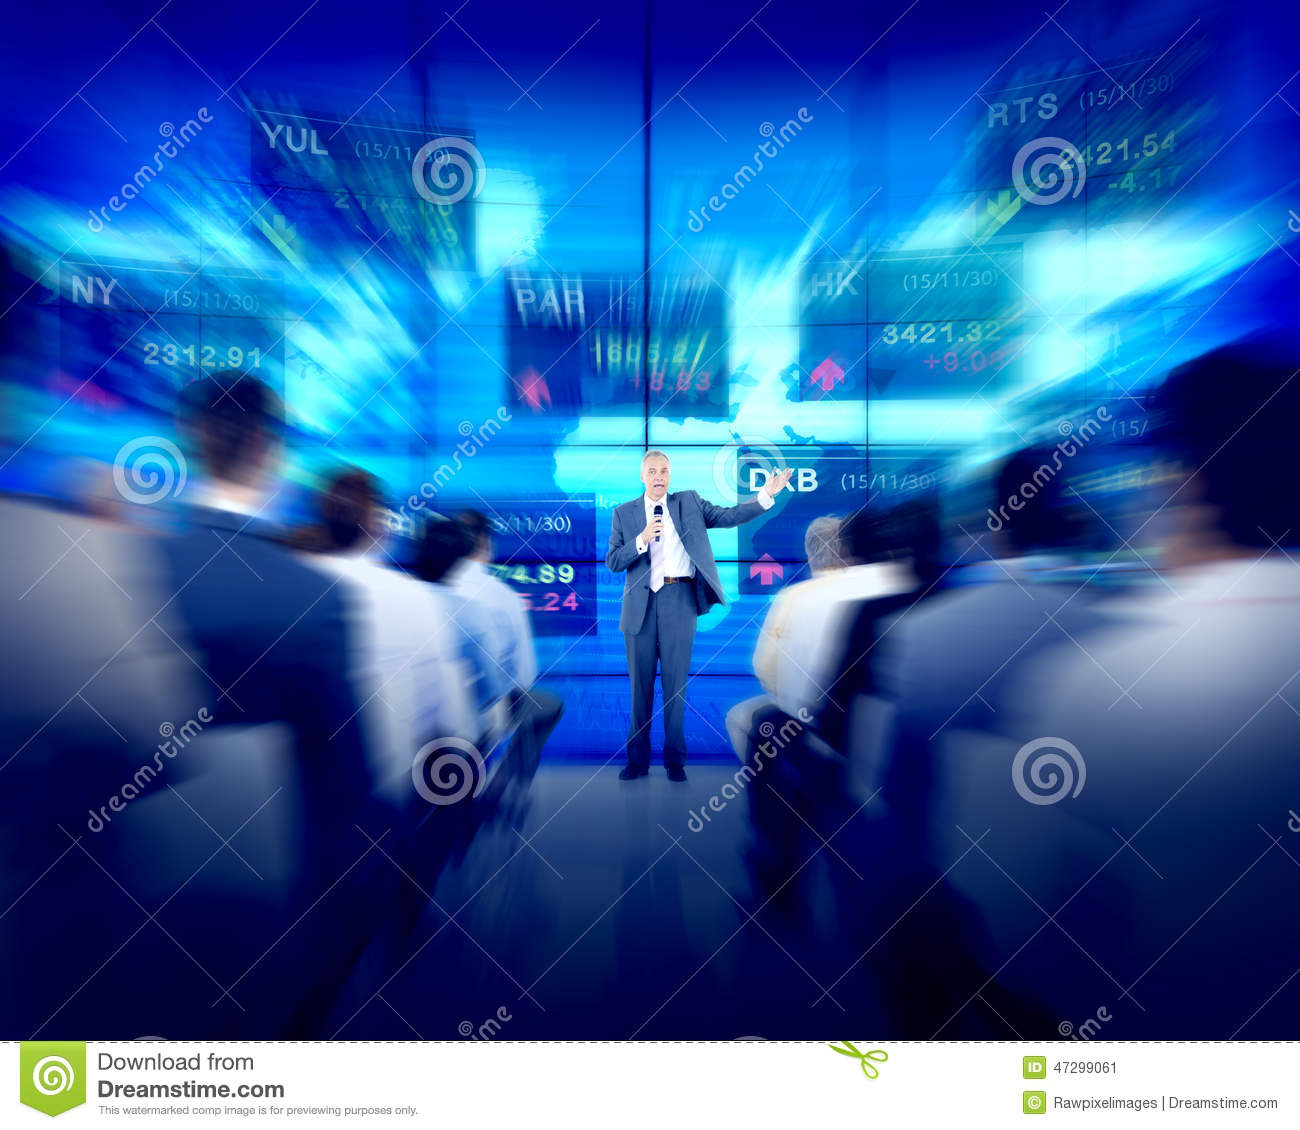 Teamwork stock photo. Image of sales, deal, advisor ...